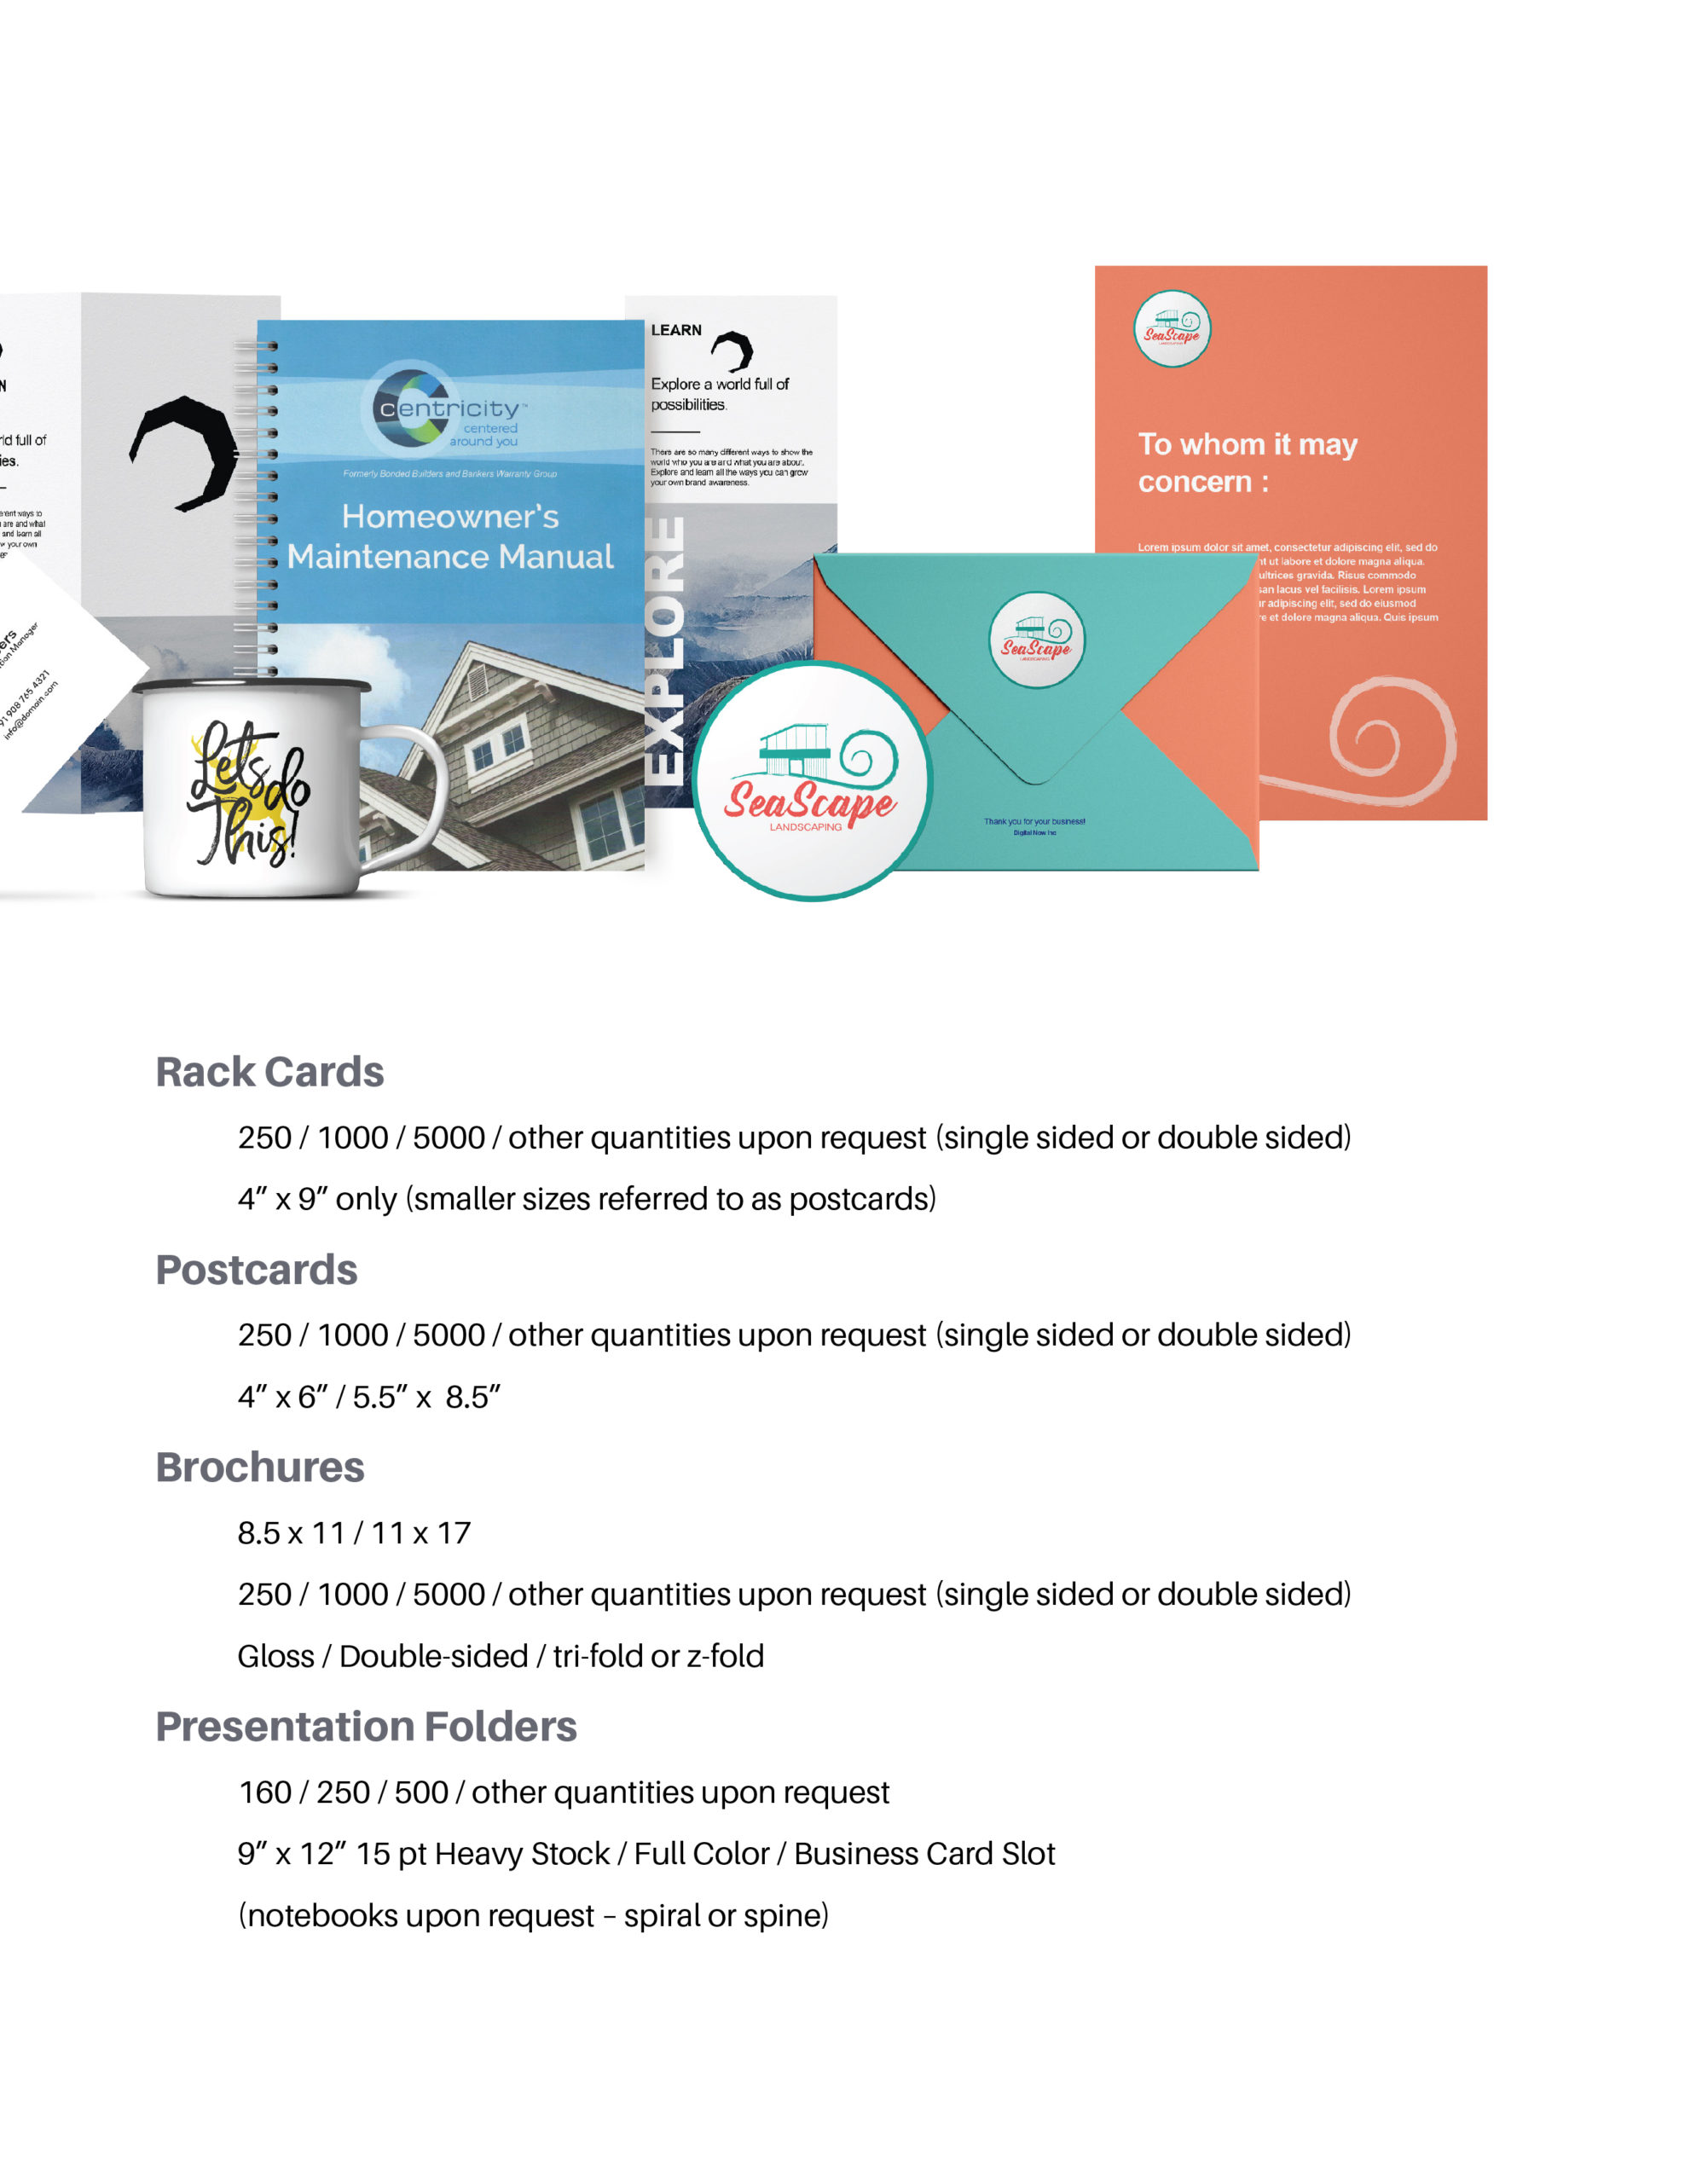 Page featuring product details on: Rack cards, Postcards, Brochures, and Presentation Folders